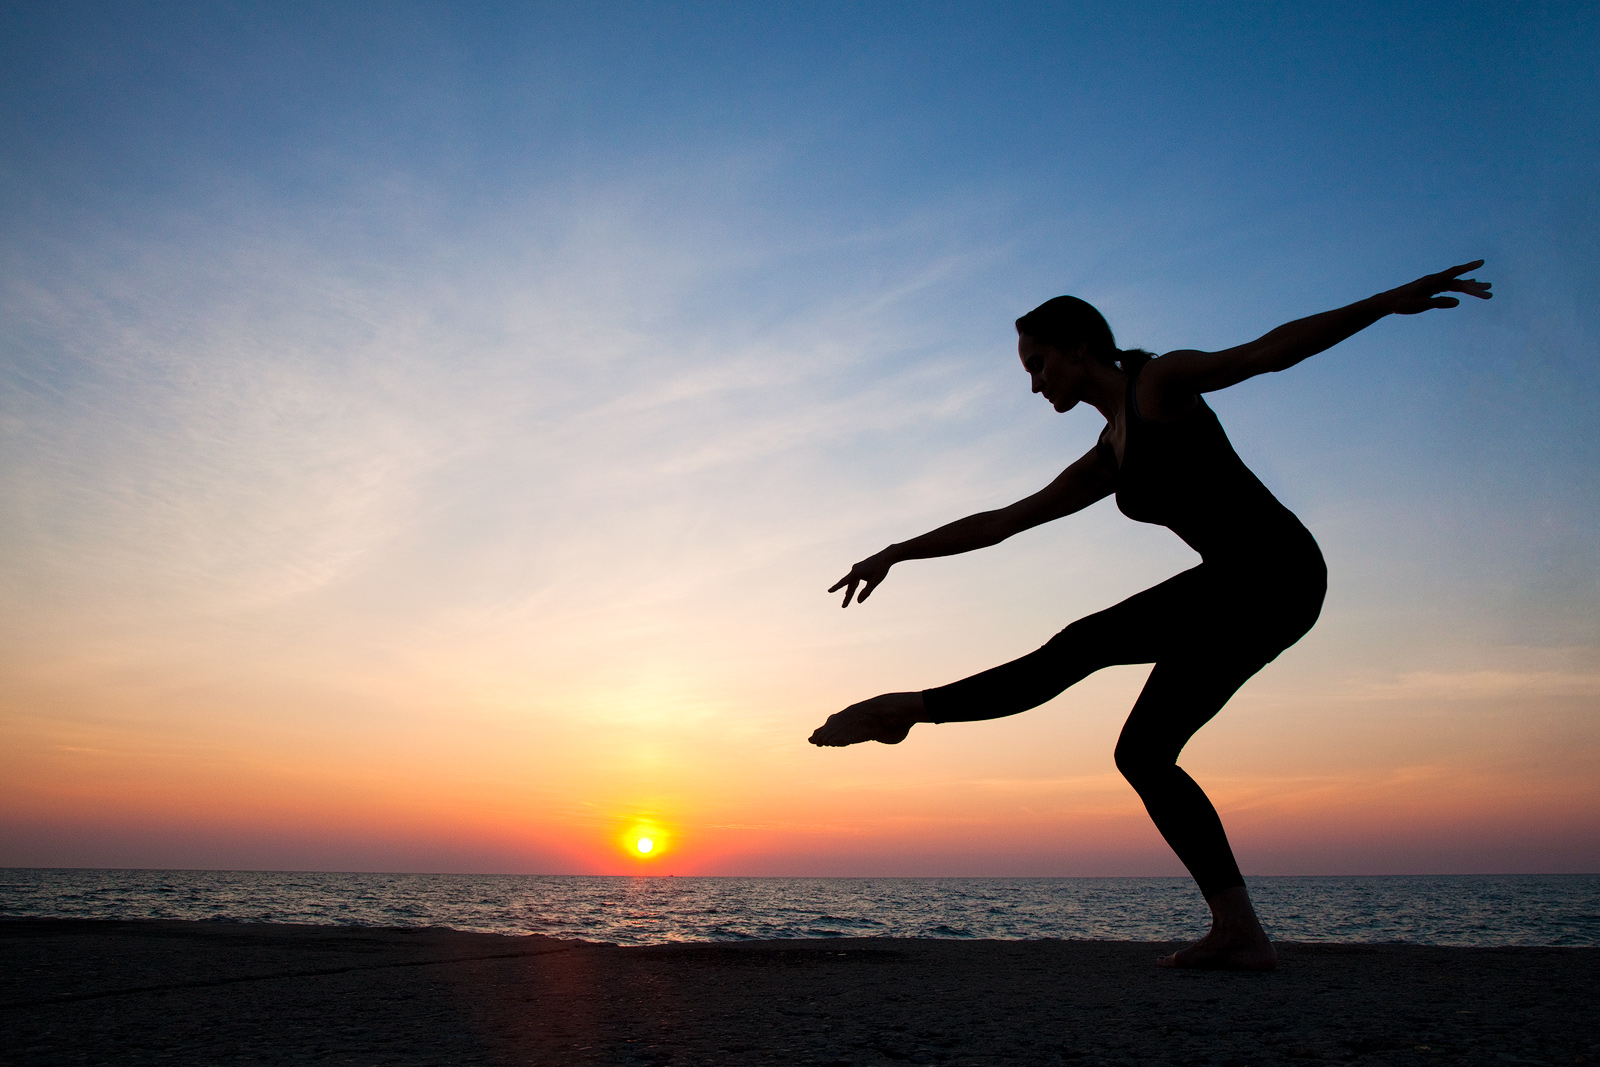 agility,america,ballet,chicago,dance,dancer,exercise,flexibility,horizontal,il,illinois,lake,lake michigan,midwest,morning,north america,silhouette,sunrise,united states,us,usa,yoga, photo